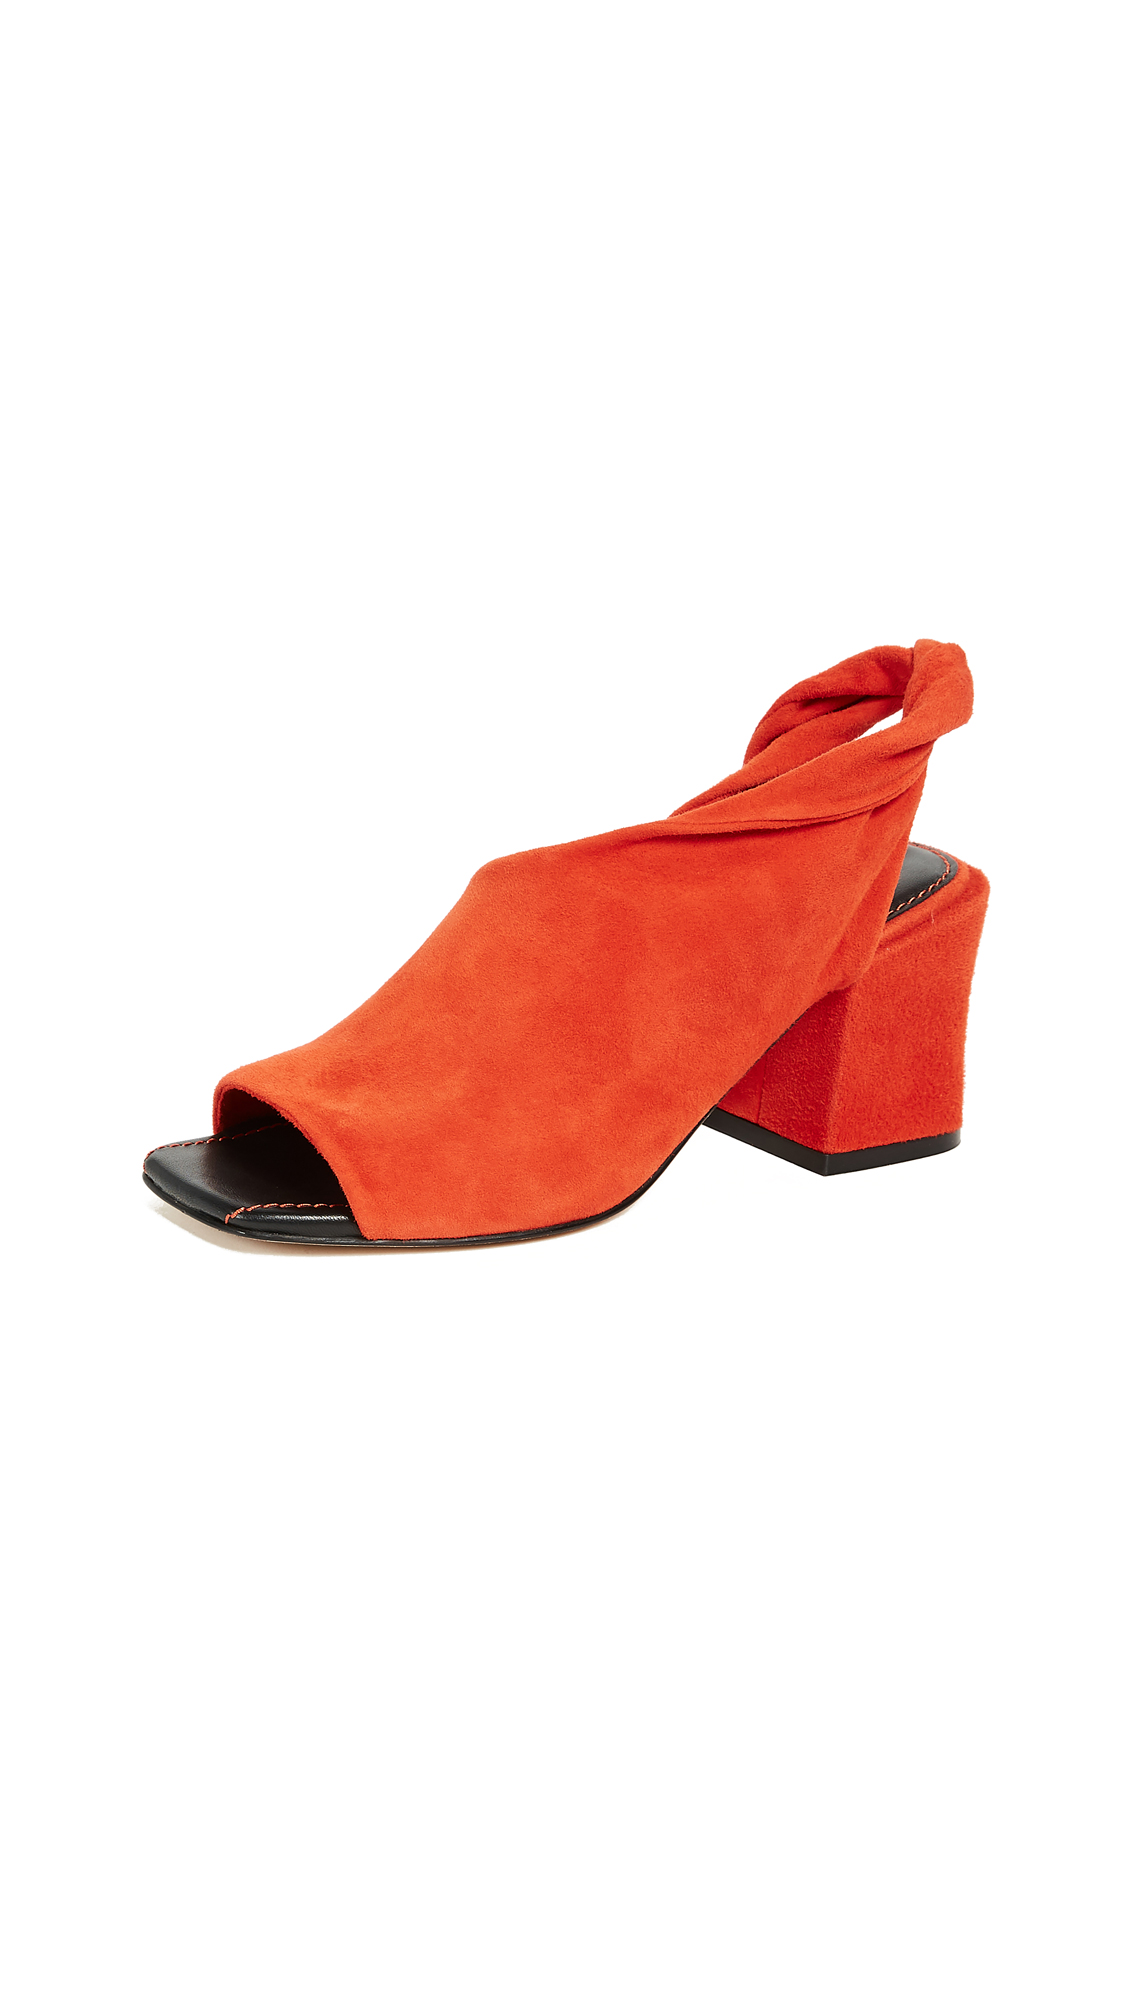 Sigerson Morrison Lenny Block Heel Pumps - Orange